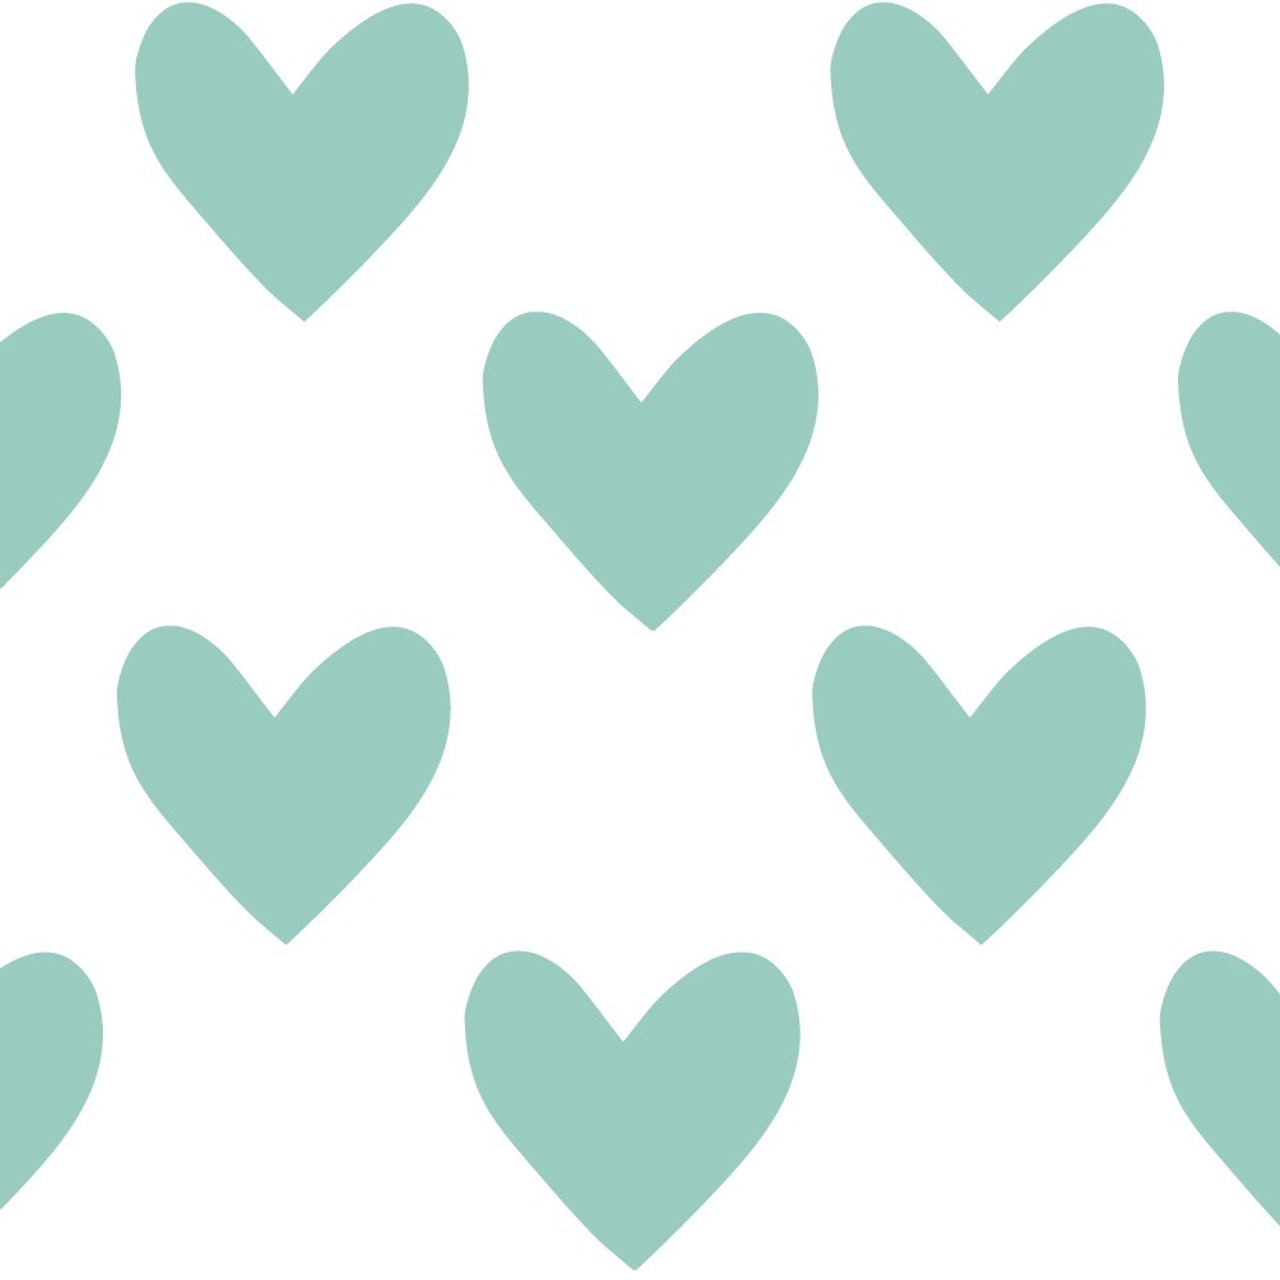 hearts fabric wall decals duckegg blue spearmint ventures llc hearts fabric wall decals duckegg blue